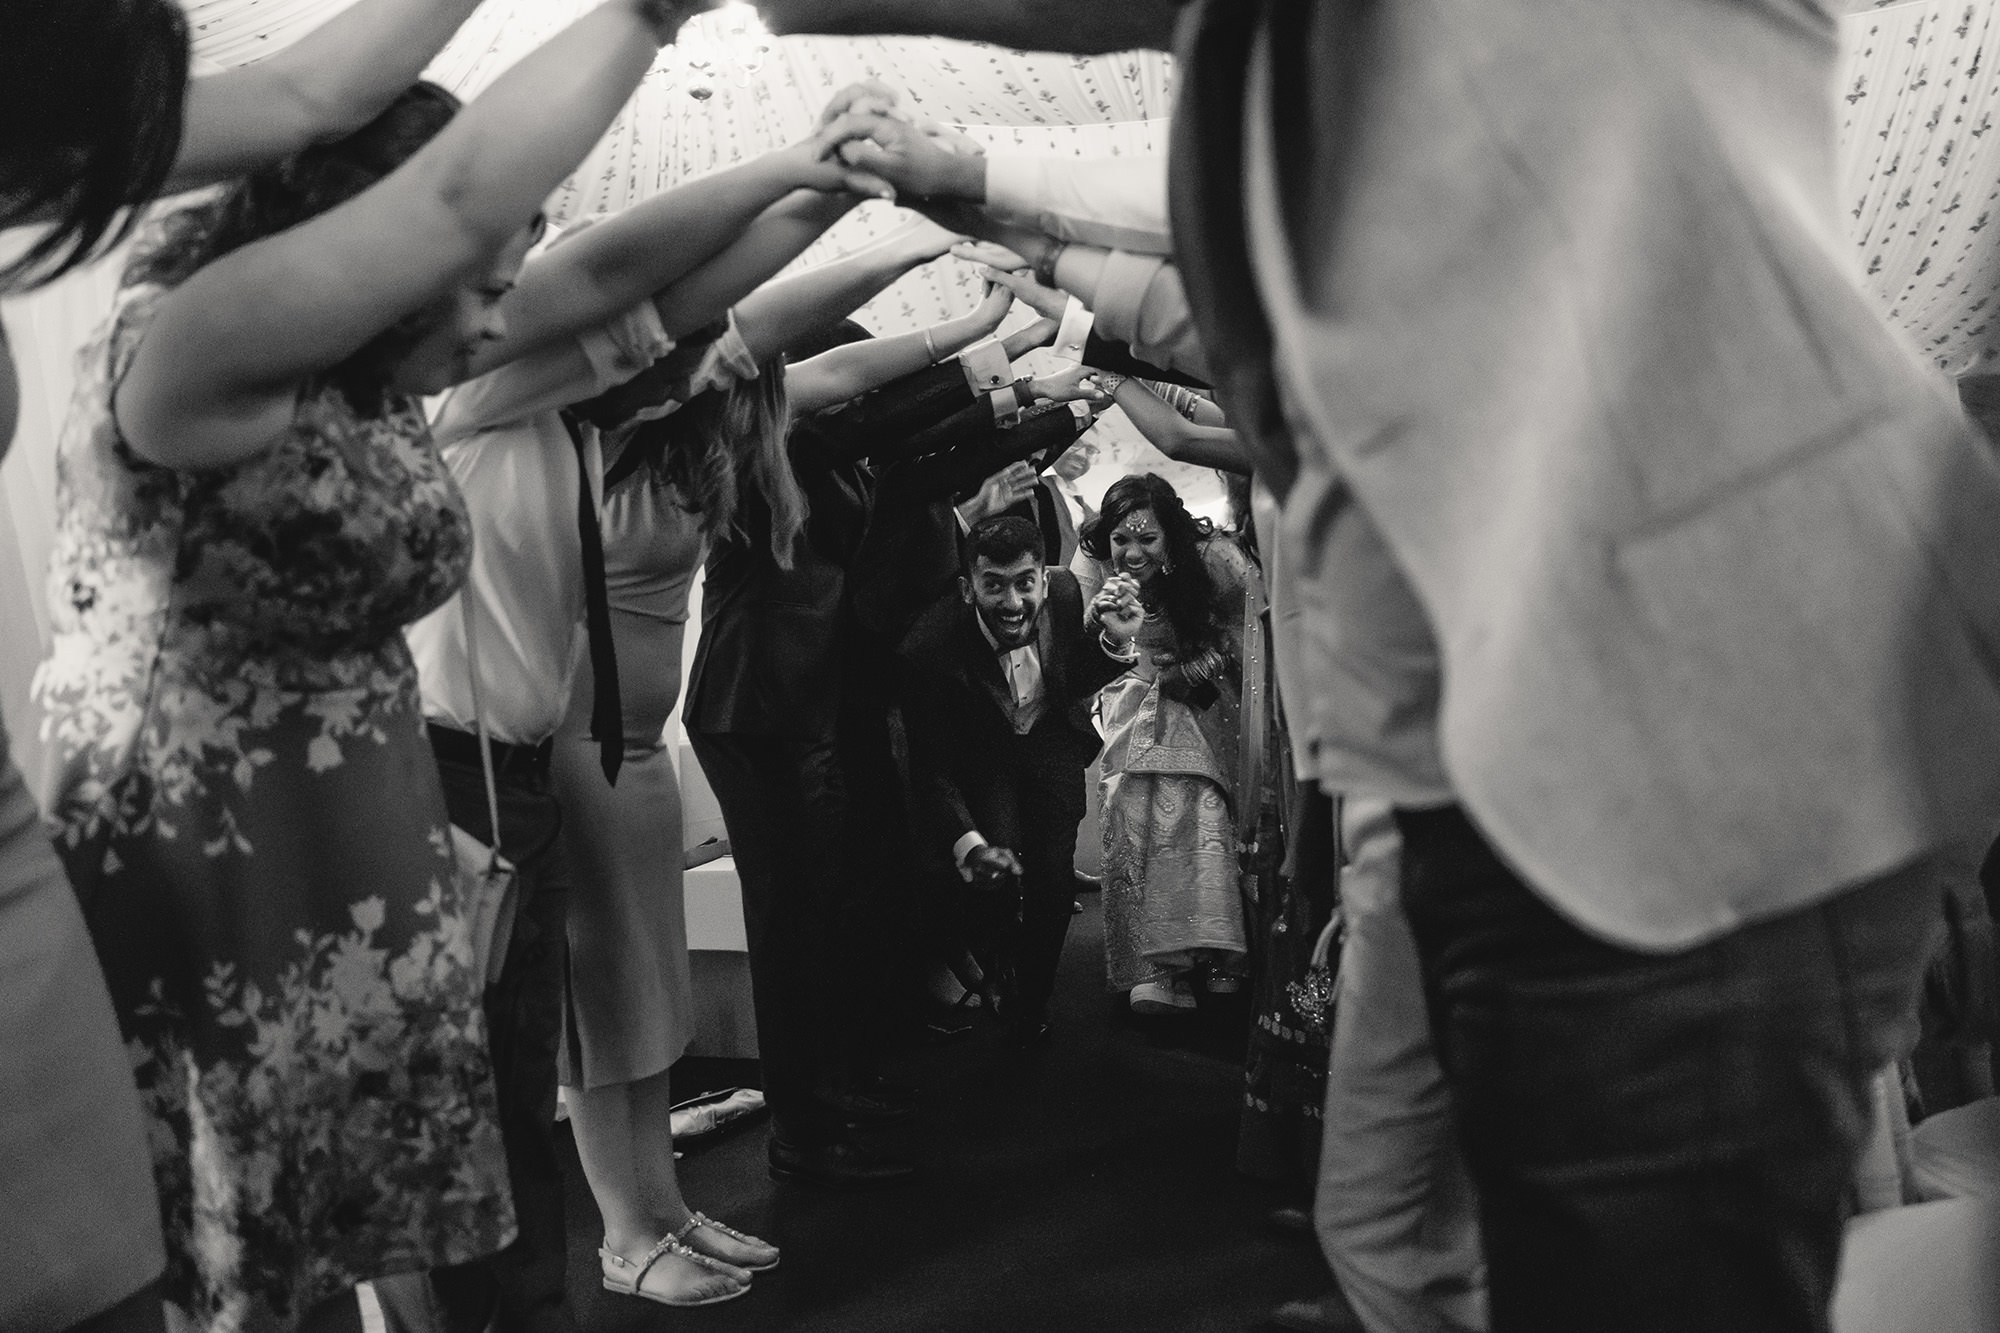 bride and groom tunnel exit at end of their wedding reception